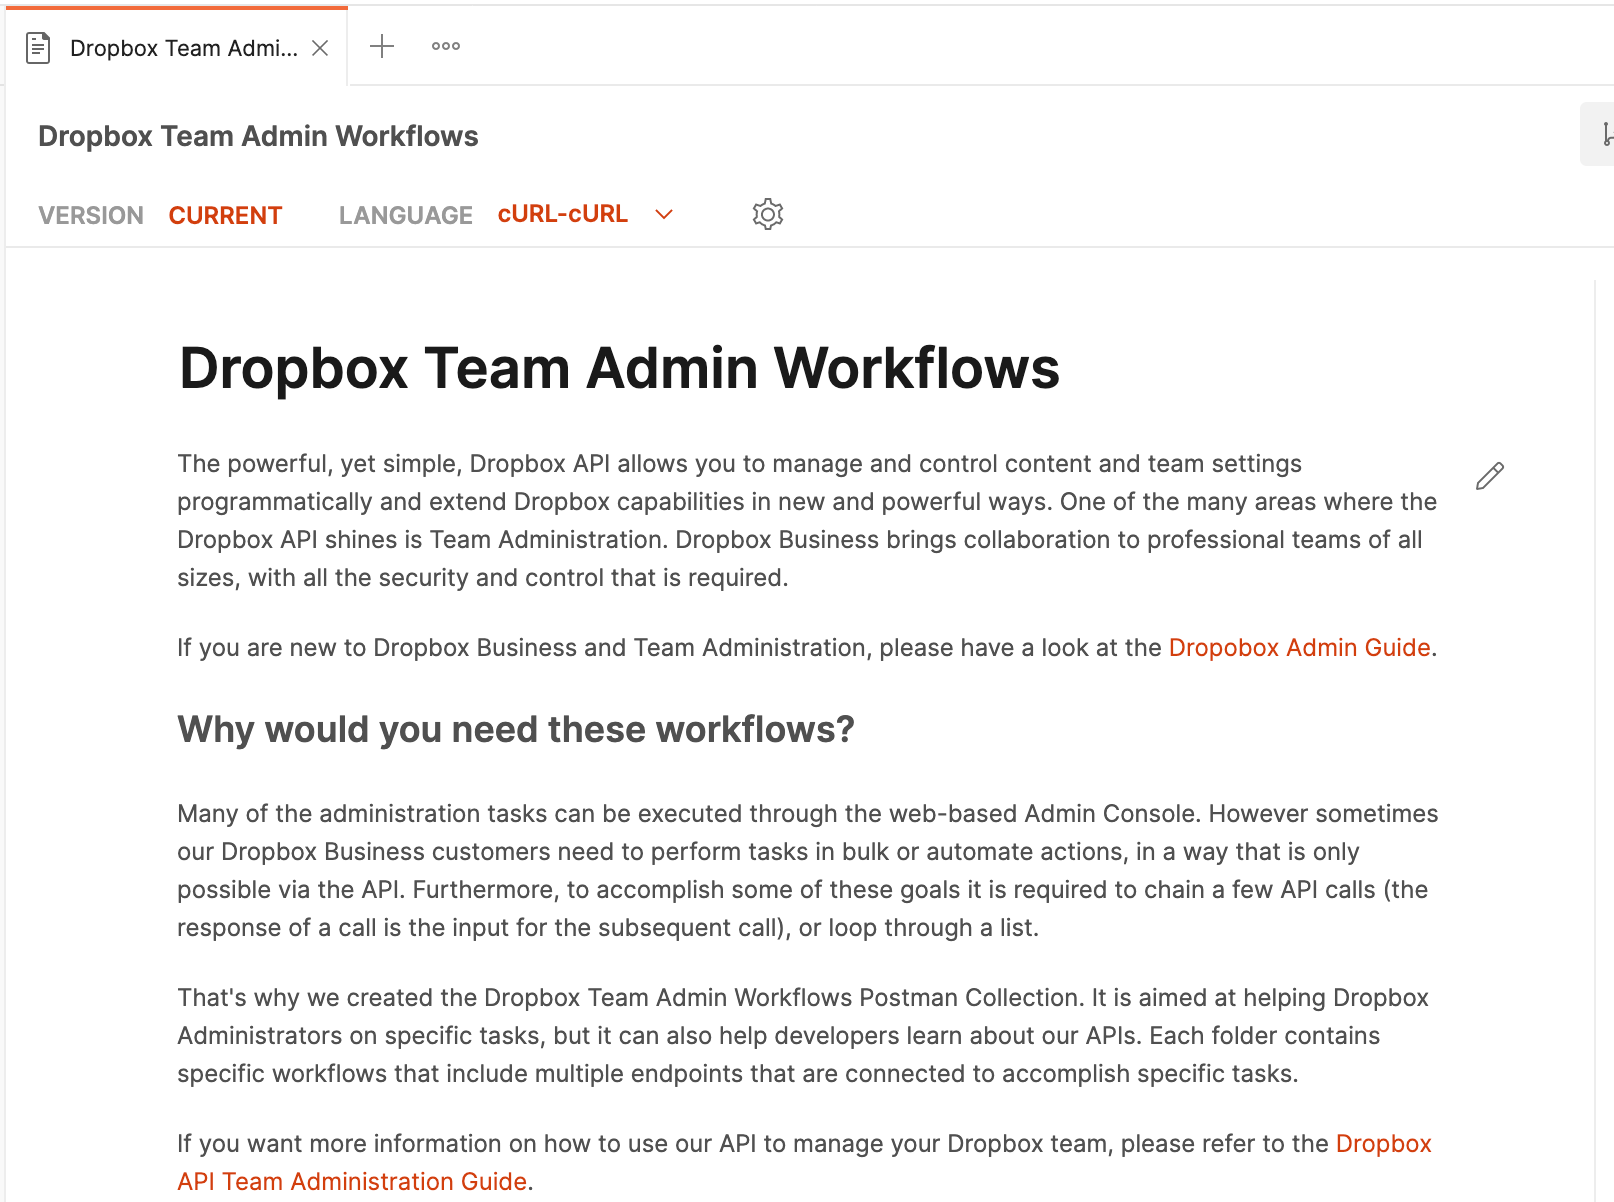 Documentation for the Dropbox Team Admin Workflows collection